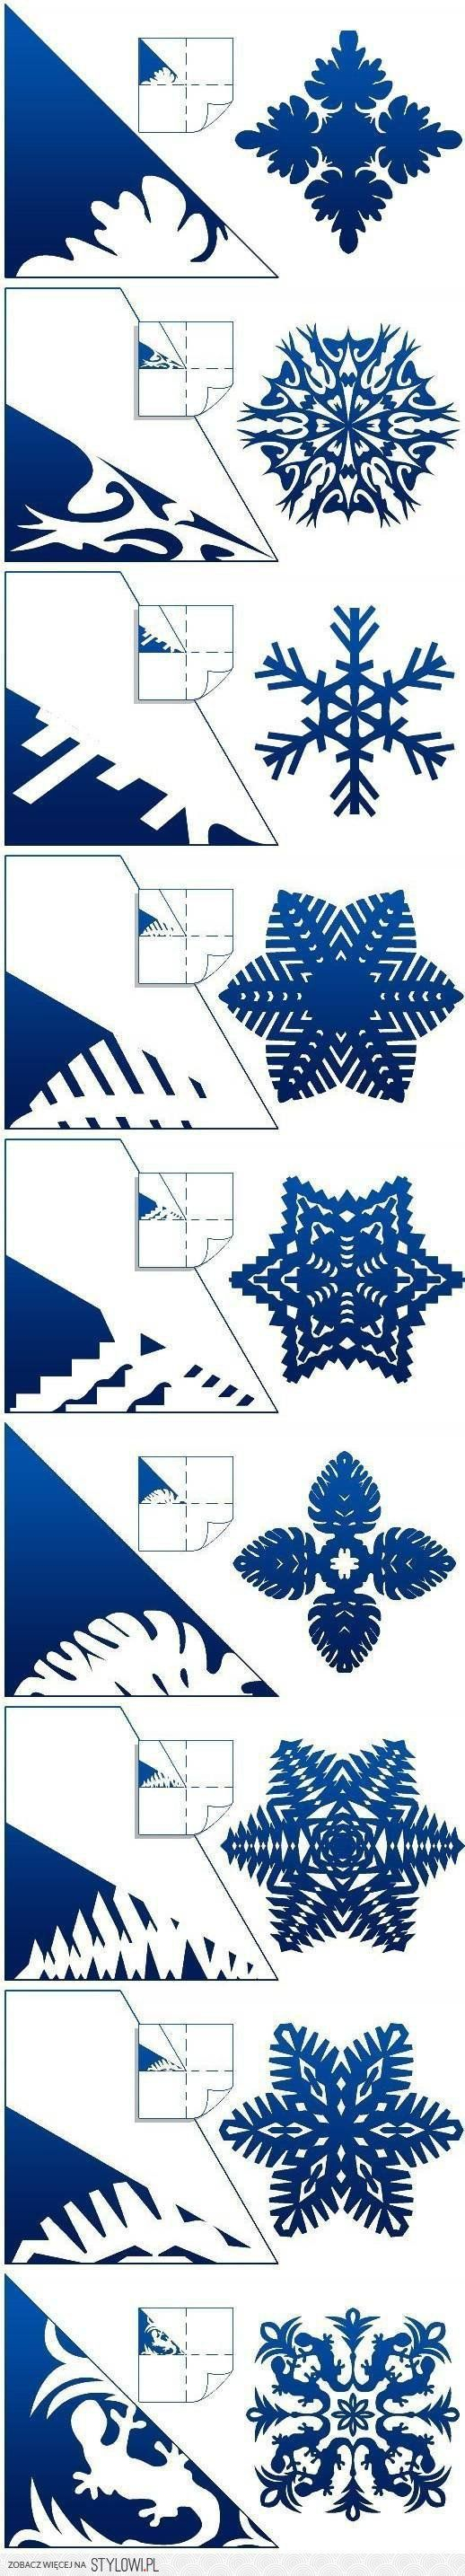 Christmas DIY Paper Snowflake Projects 2D&3D to Beautify Your Ambiance [Detailed Guide+Templates]